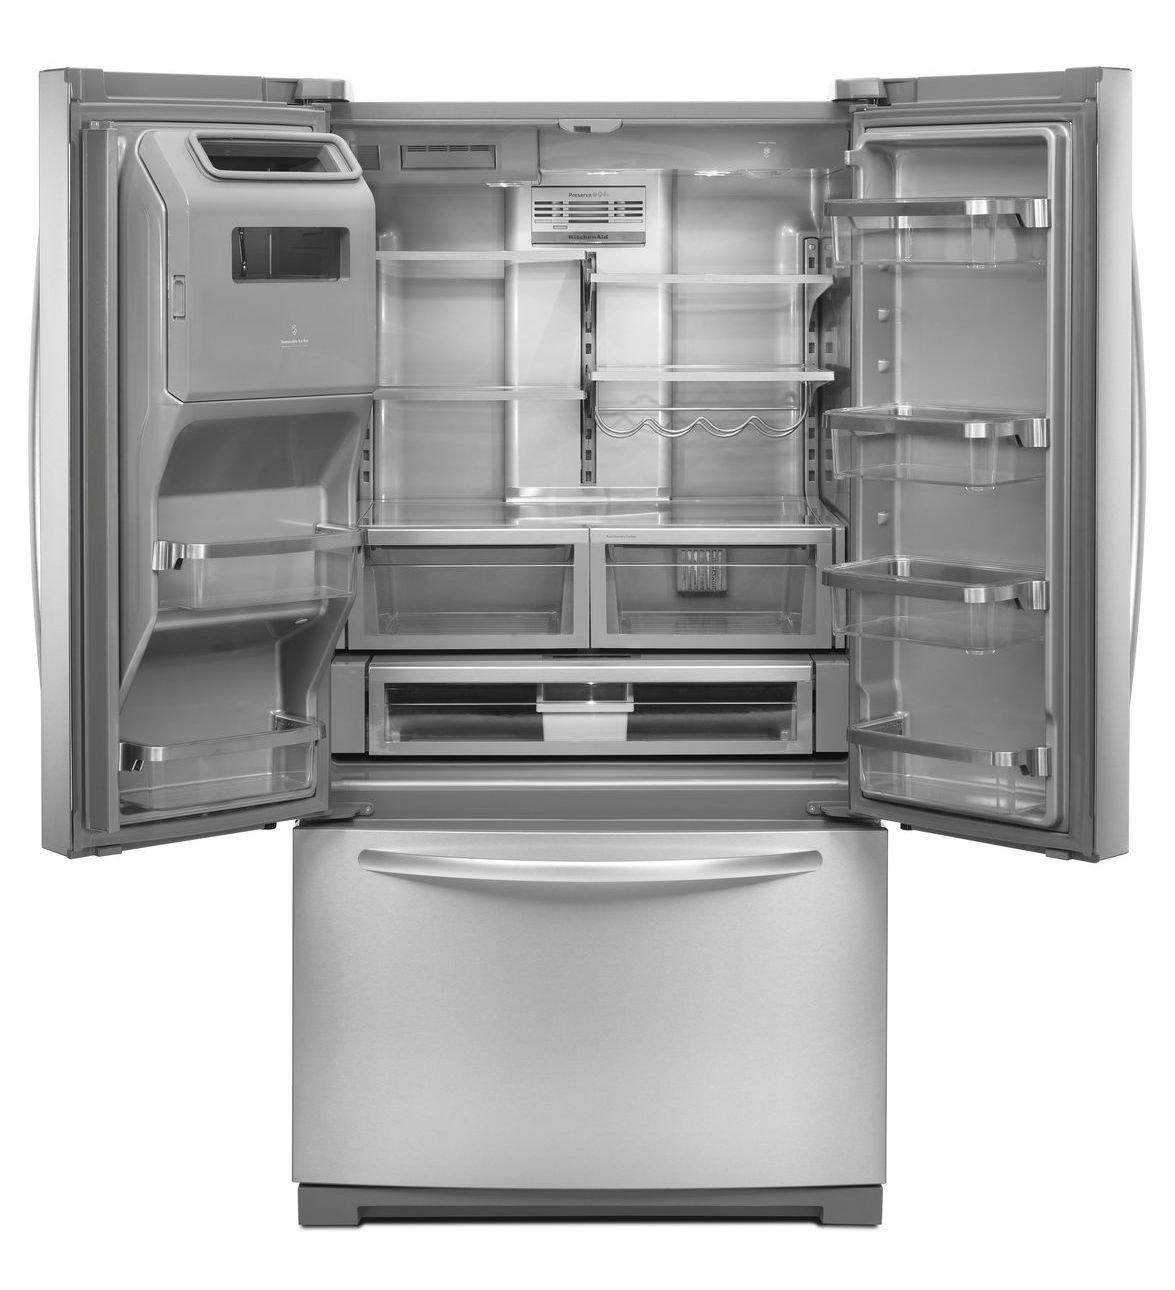 Kitchenaid Kfiv29pcms 27 Cu Ft French Door Standard